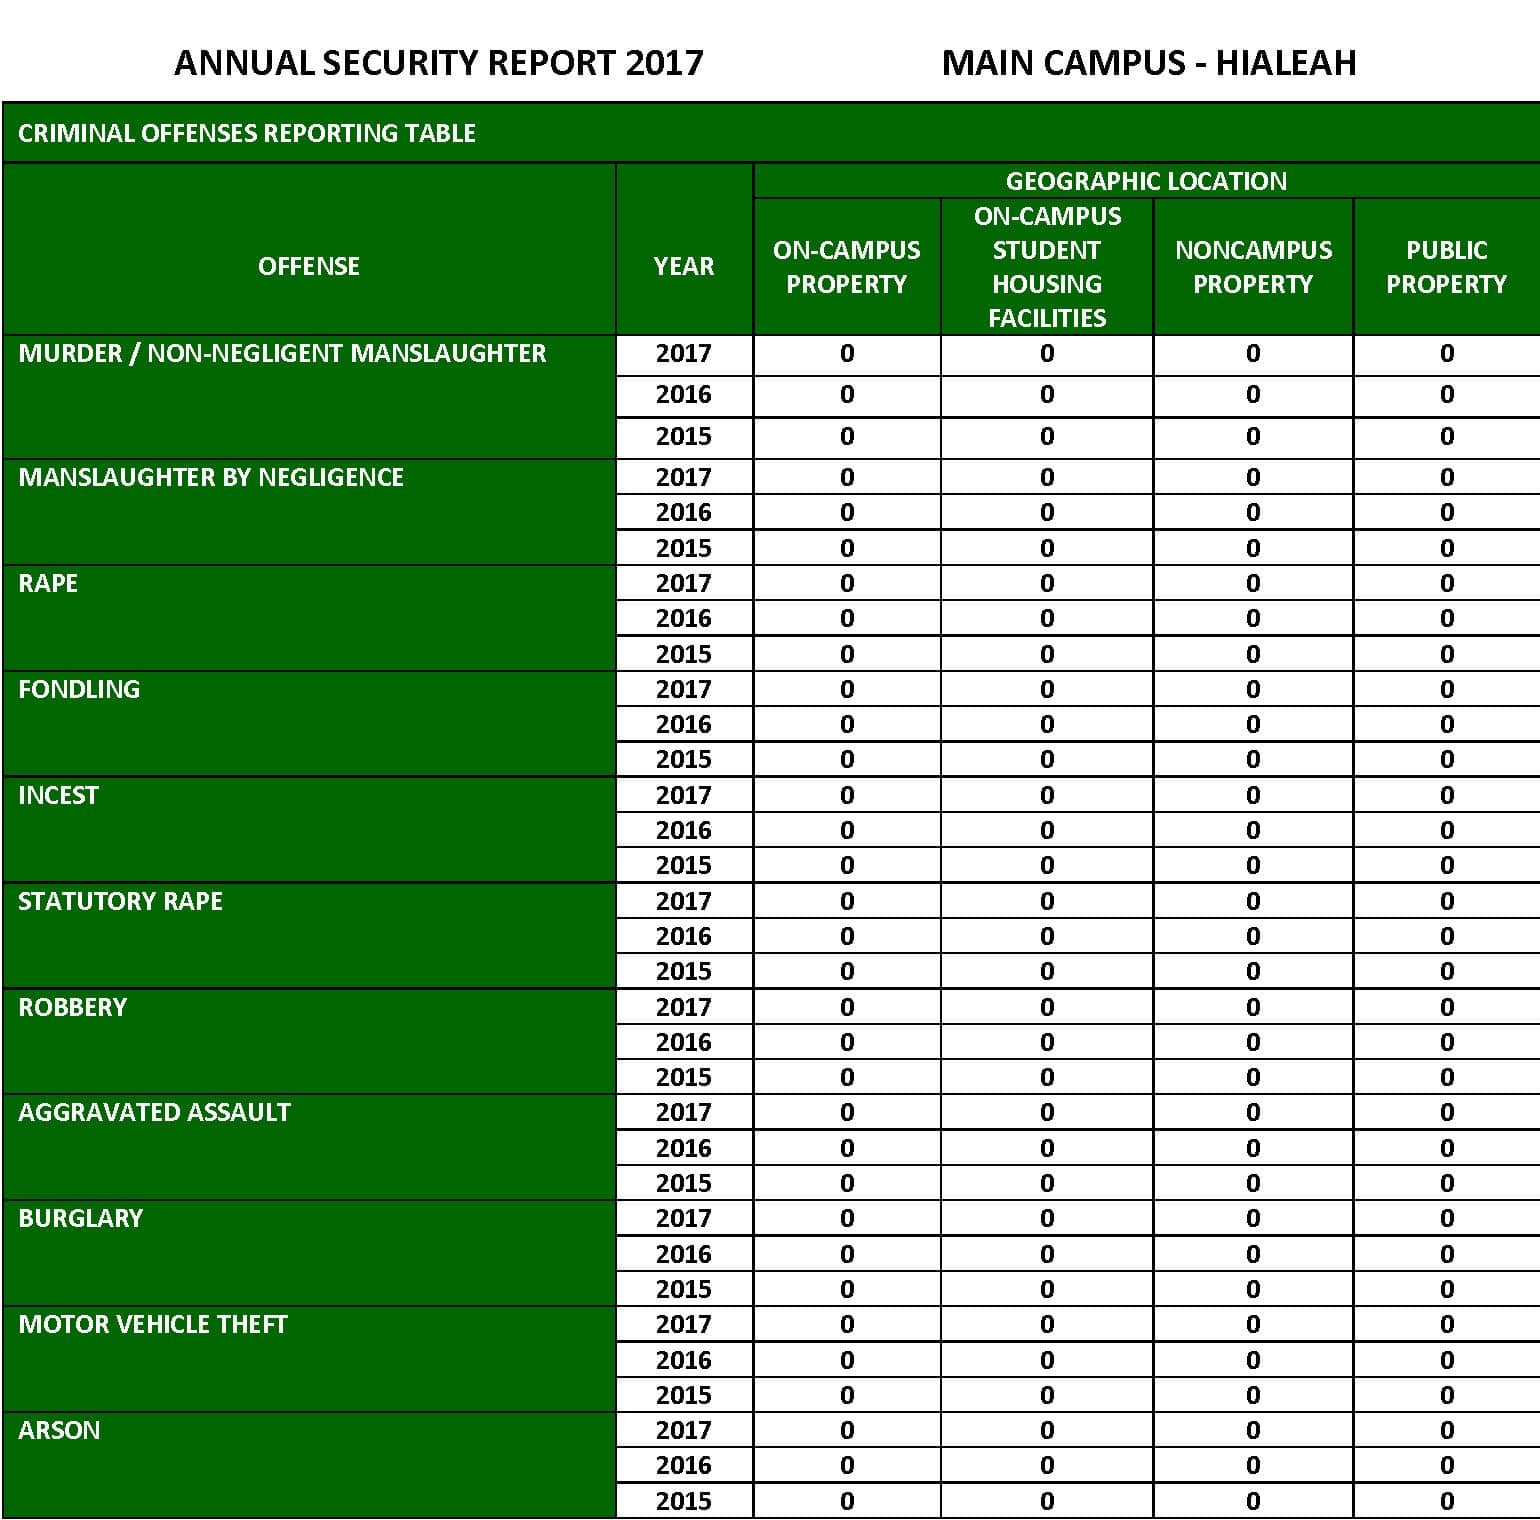 Campus Safety and Security Reporting 2017